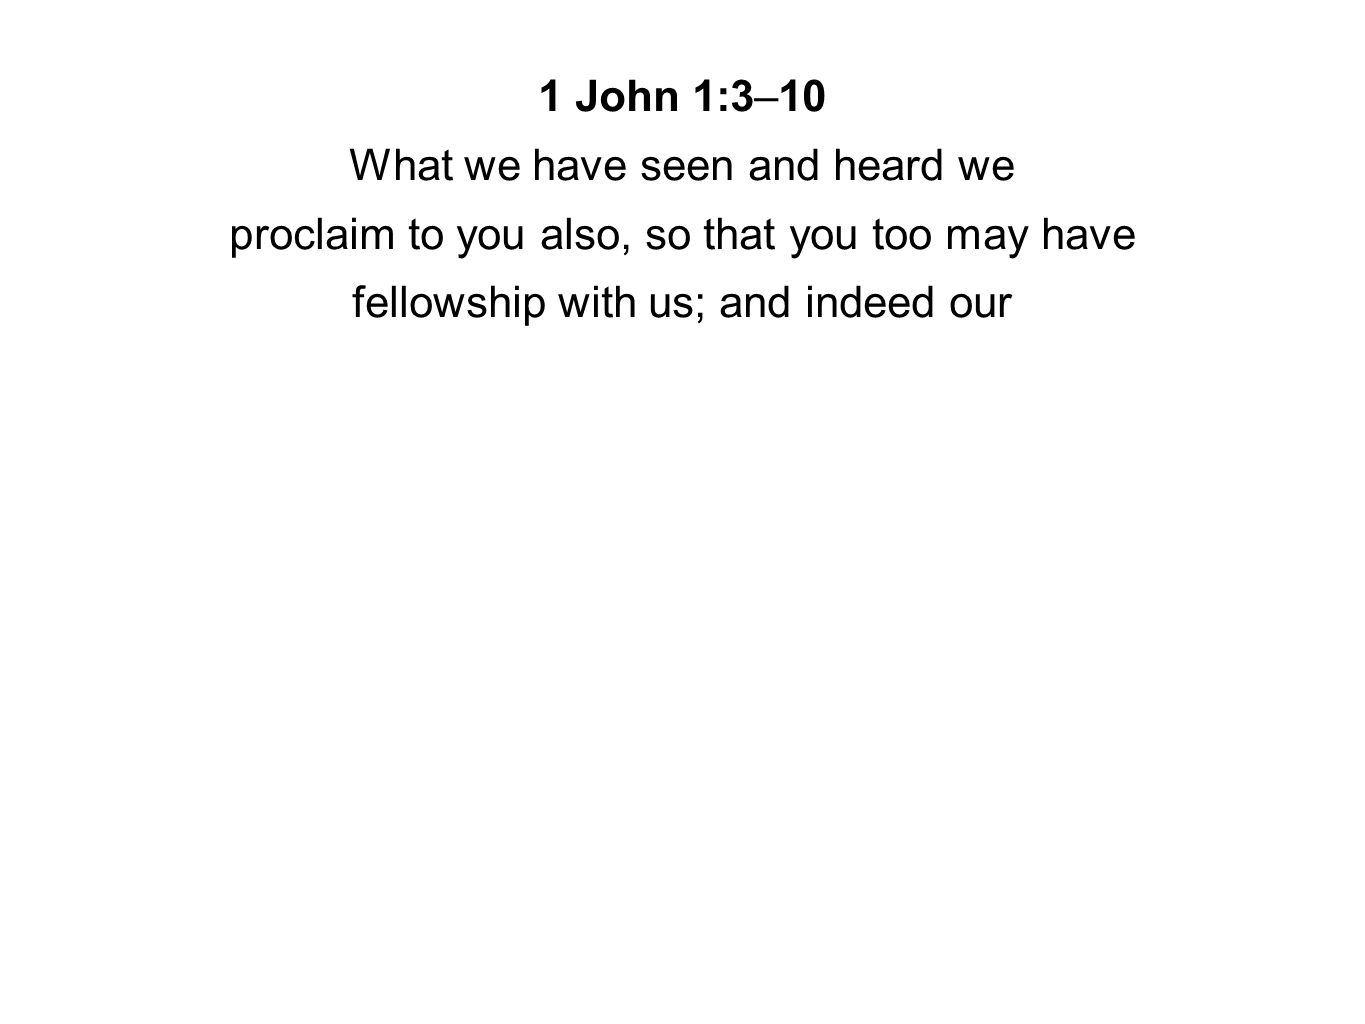 1 John 1:3–10 What we have seen and heard we proclaim to you also, so that you too may have fellowship with us; and indeed our